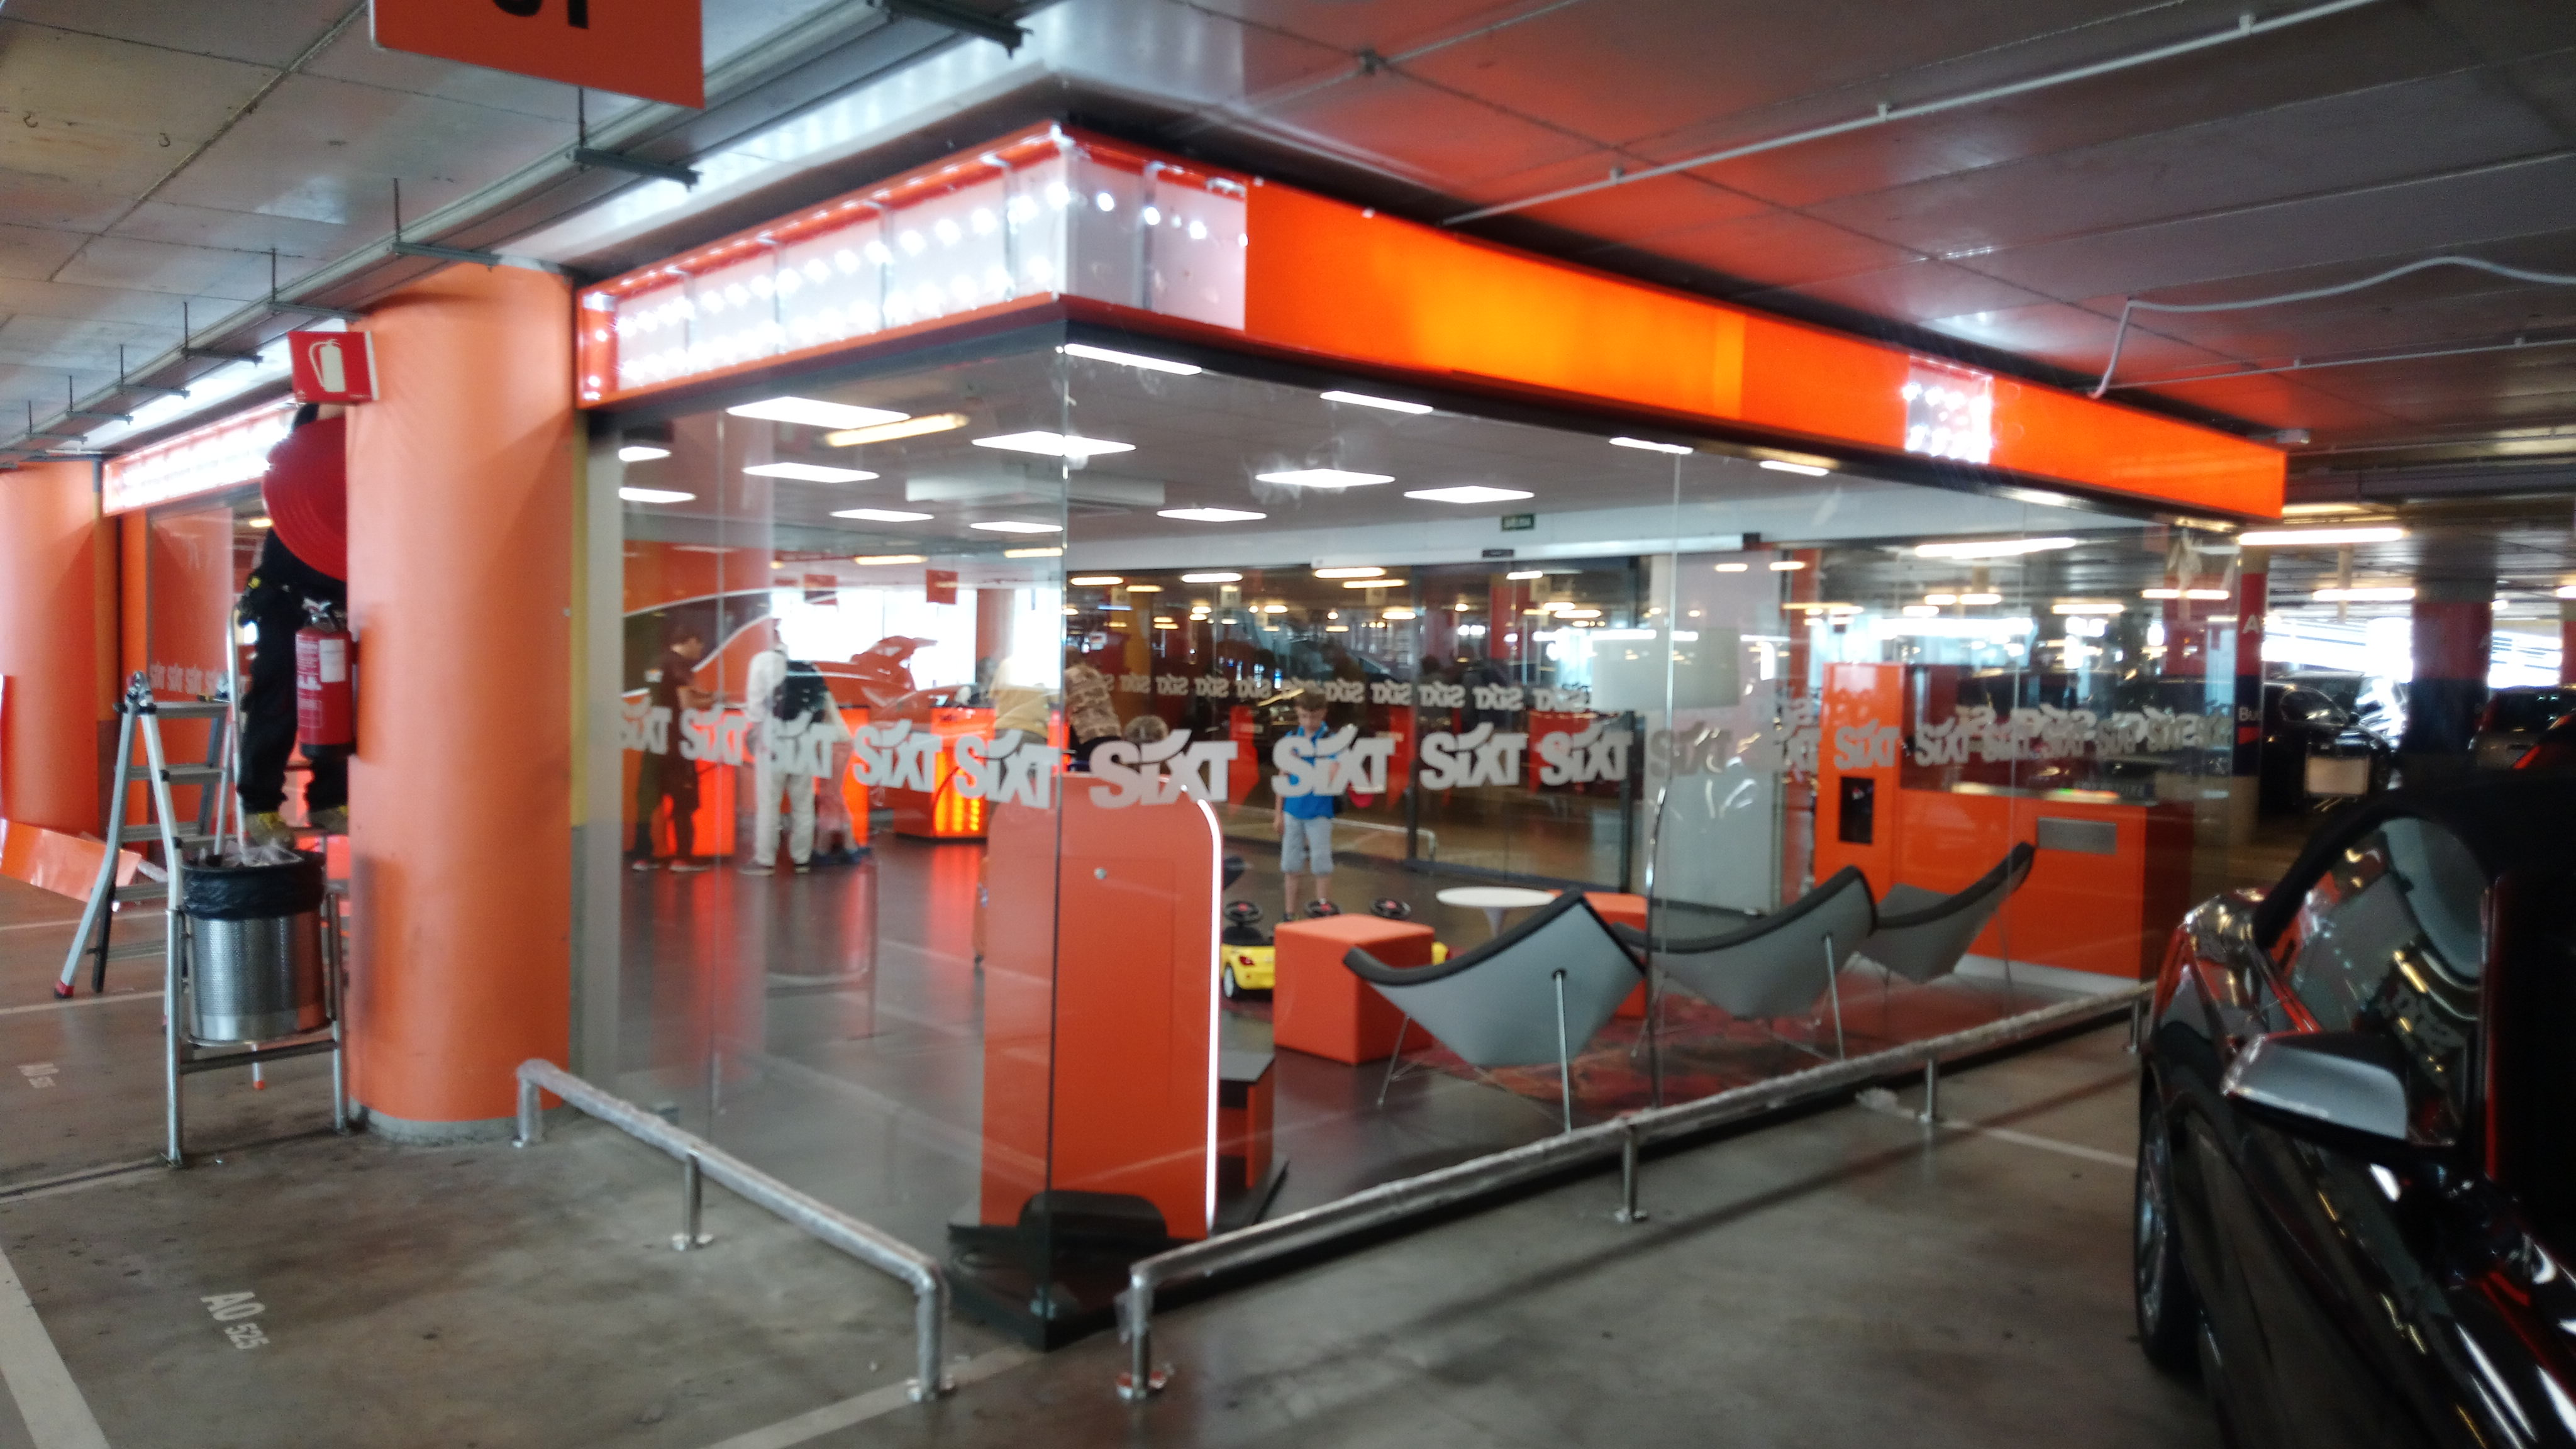 sixt t1 parking reforma 10